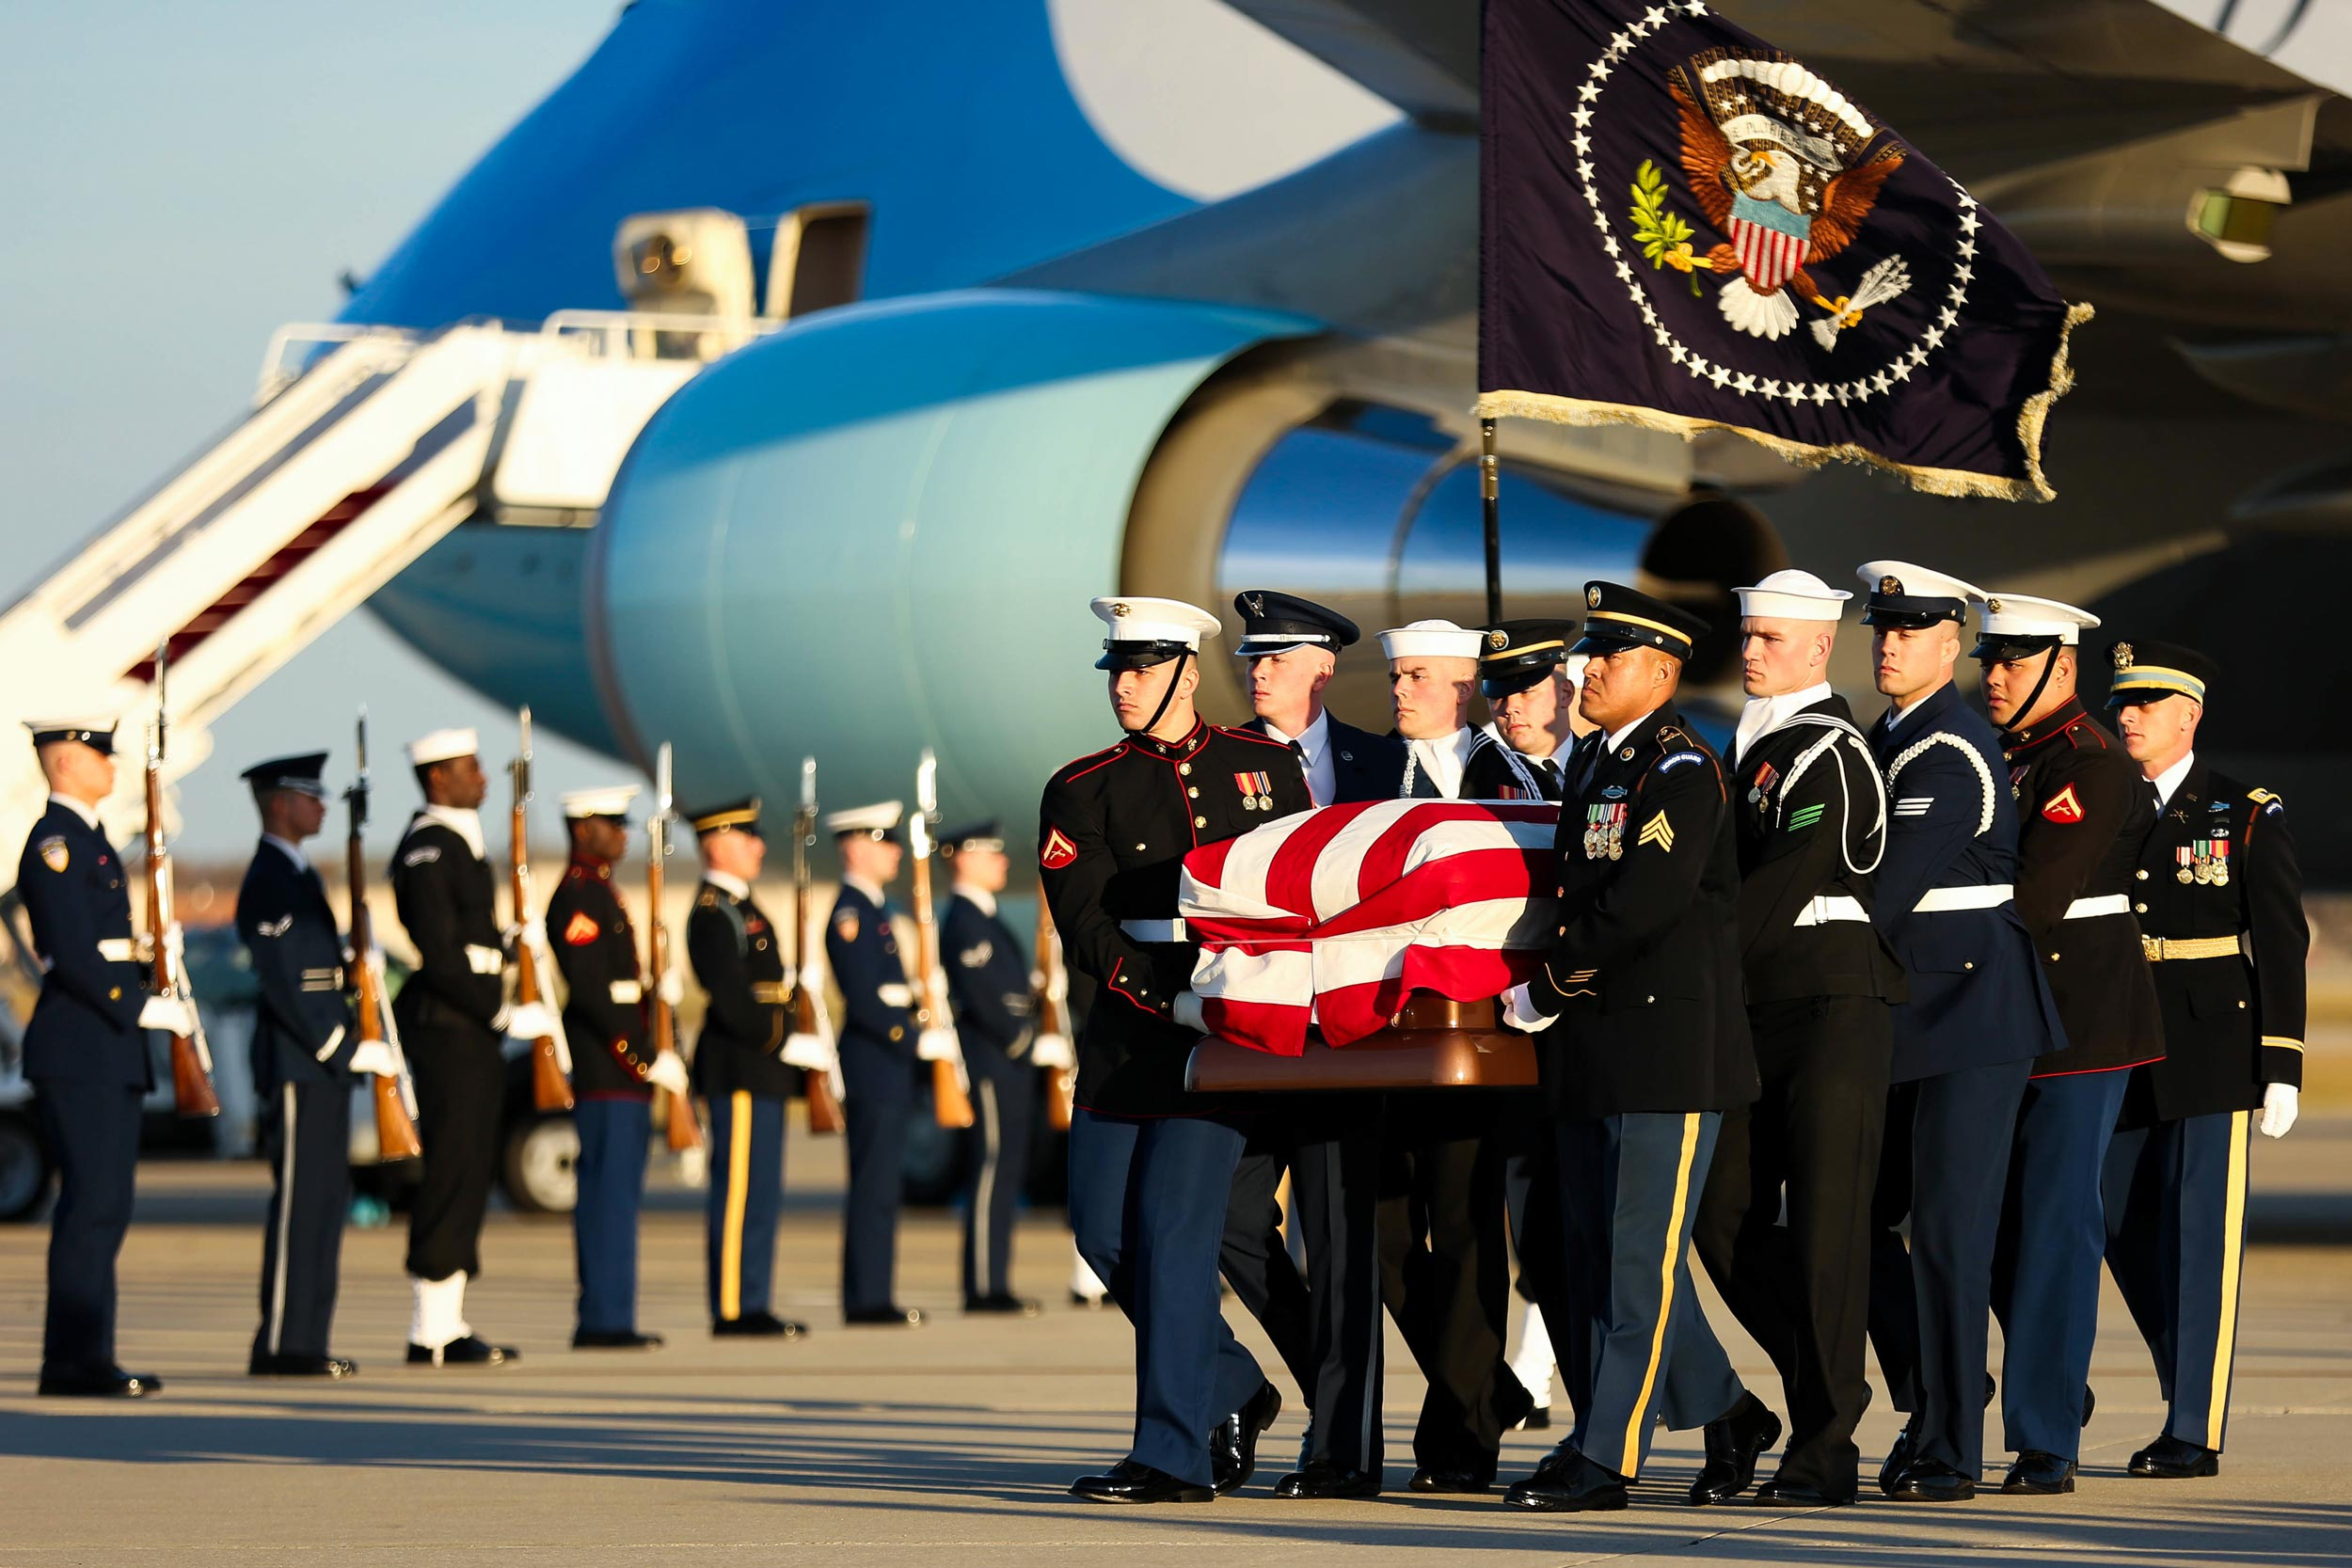 President George H.W. Bush's casket arrived in Washington on Monday for the late president's state funeral.